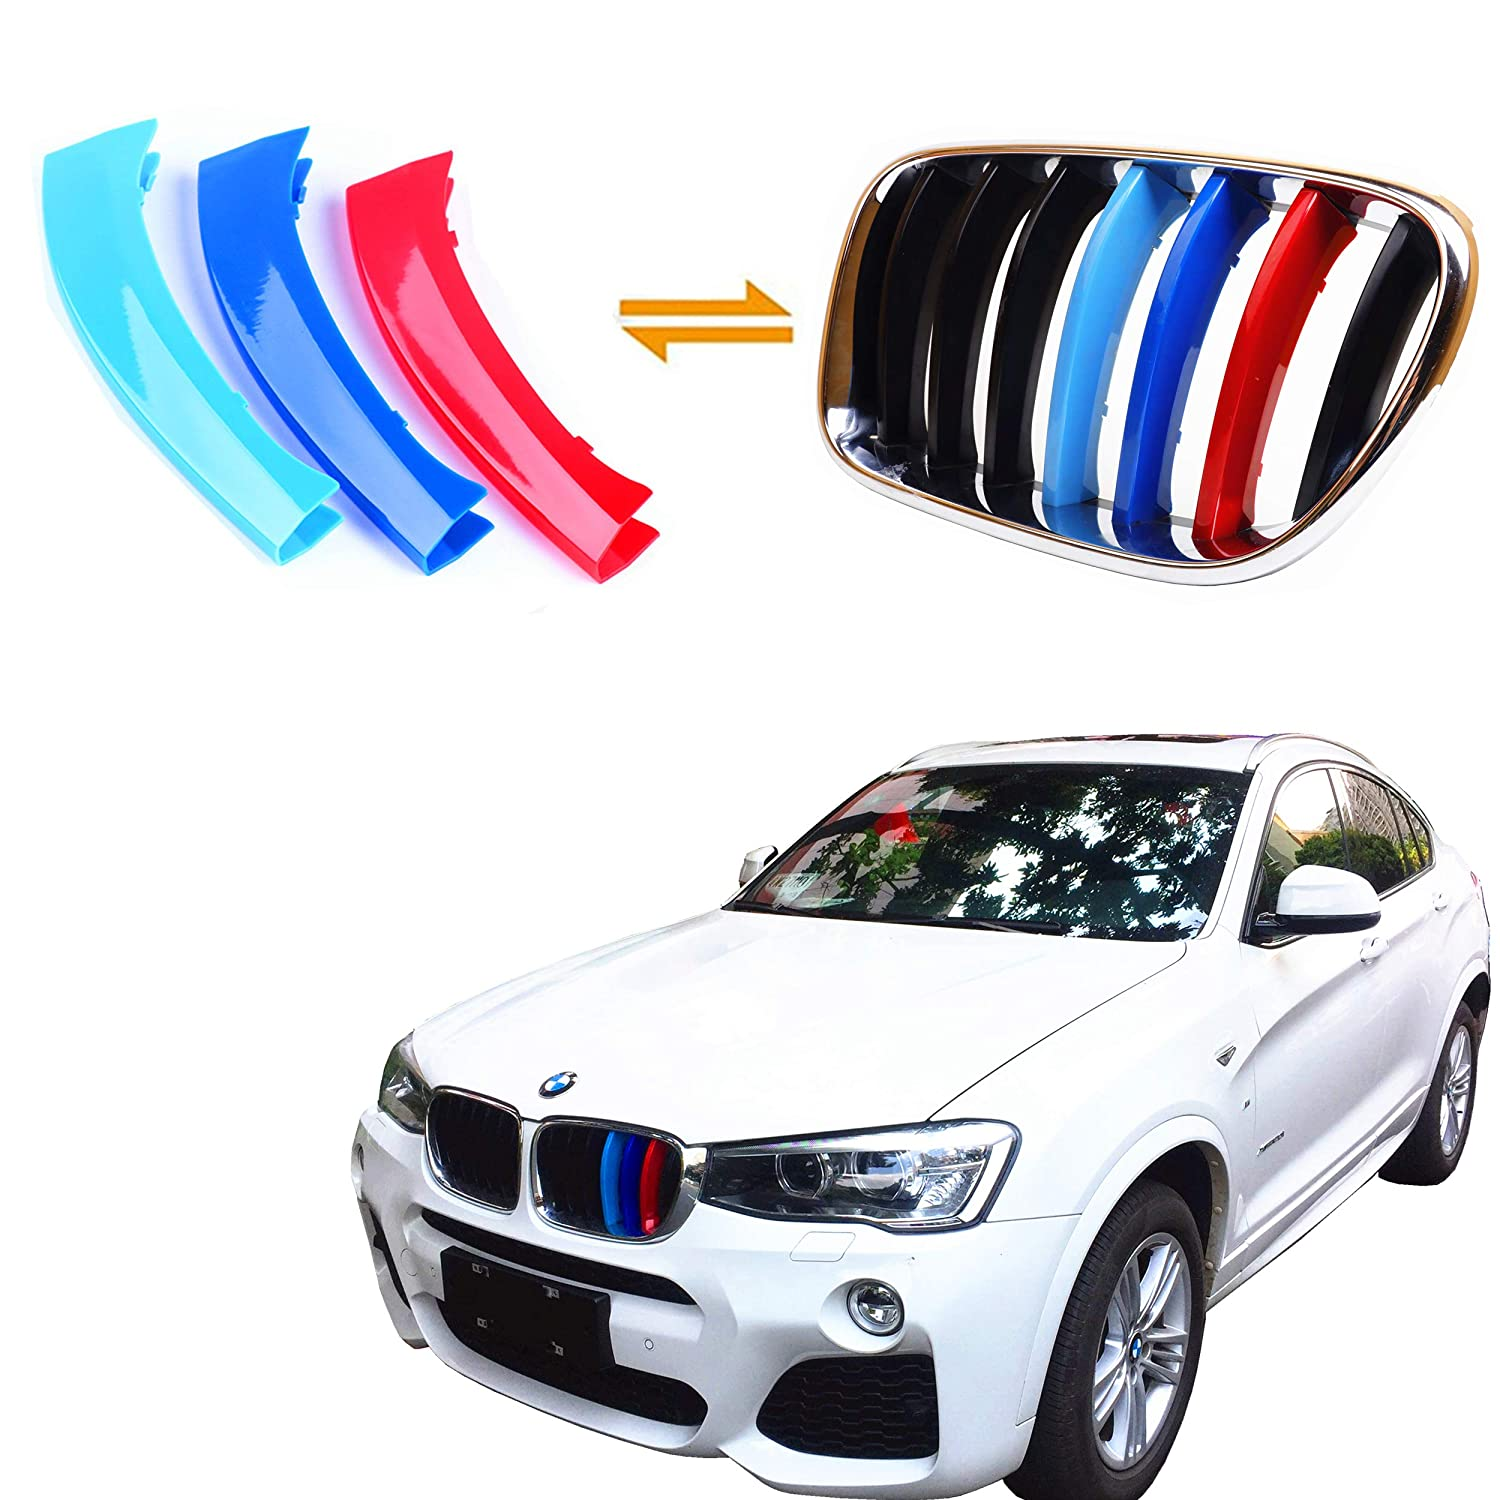 for BMW 2011-2017 X3 /& X4, 7 Beams Jackey Awesome Exact Fit //////M-Colored Grille Insert Trims for BMW 2011-2017 F25 X3 F26 X4 Center Kidney Grill